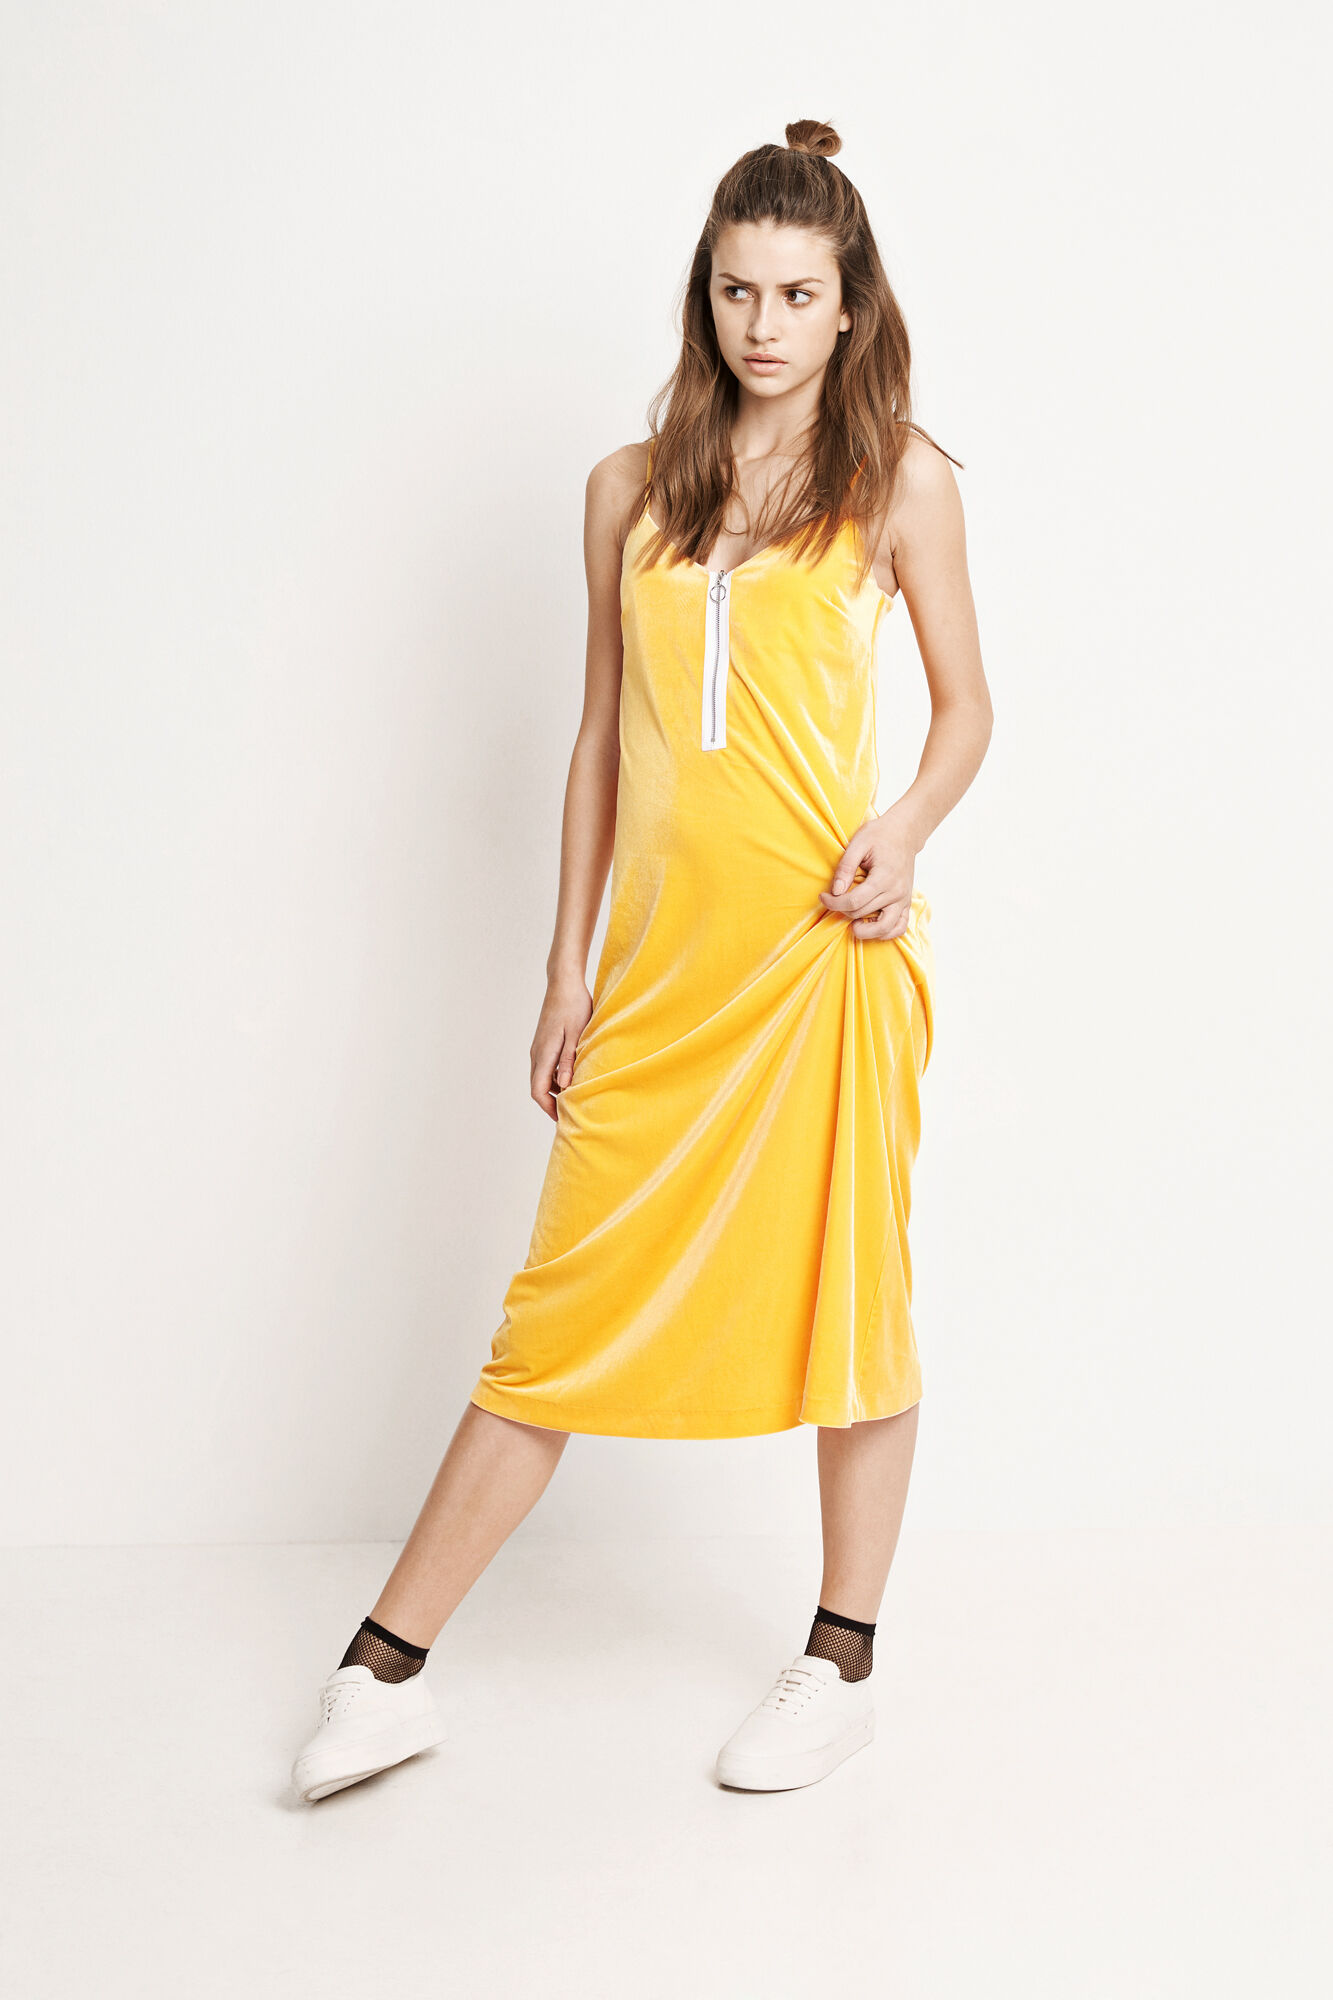 ENREGINA SL DRESS 5912, RADIENT YELLOW